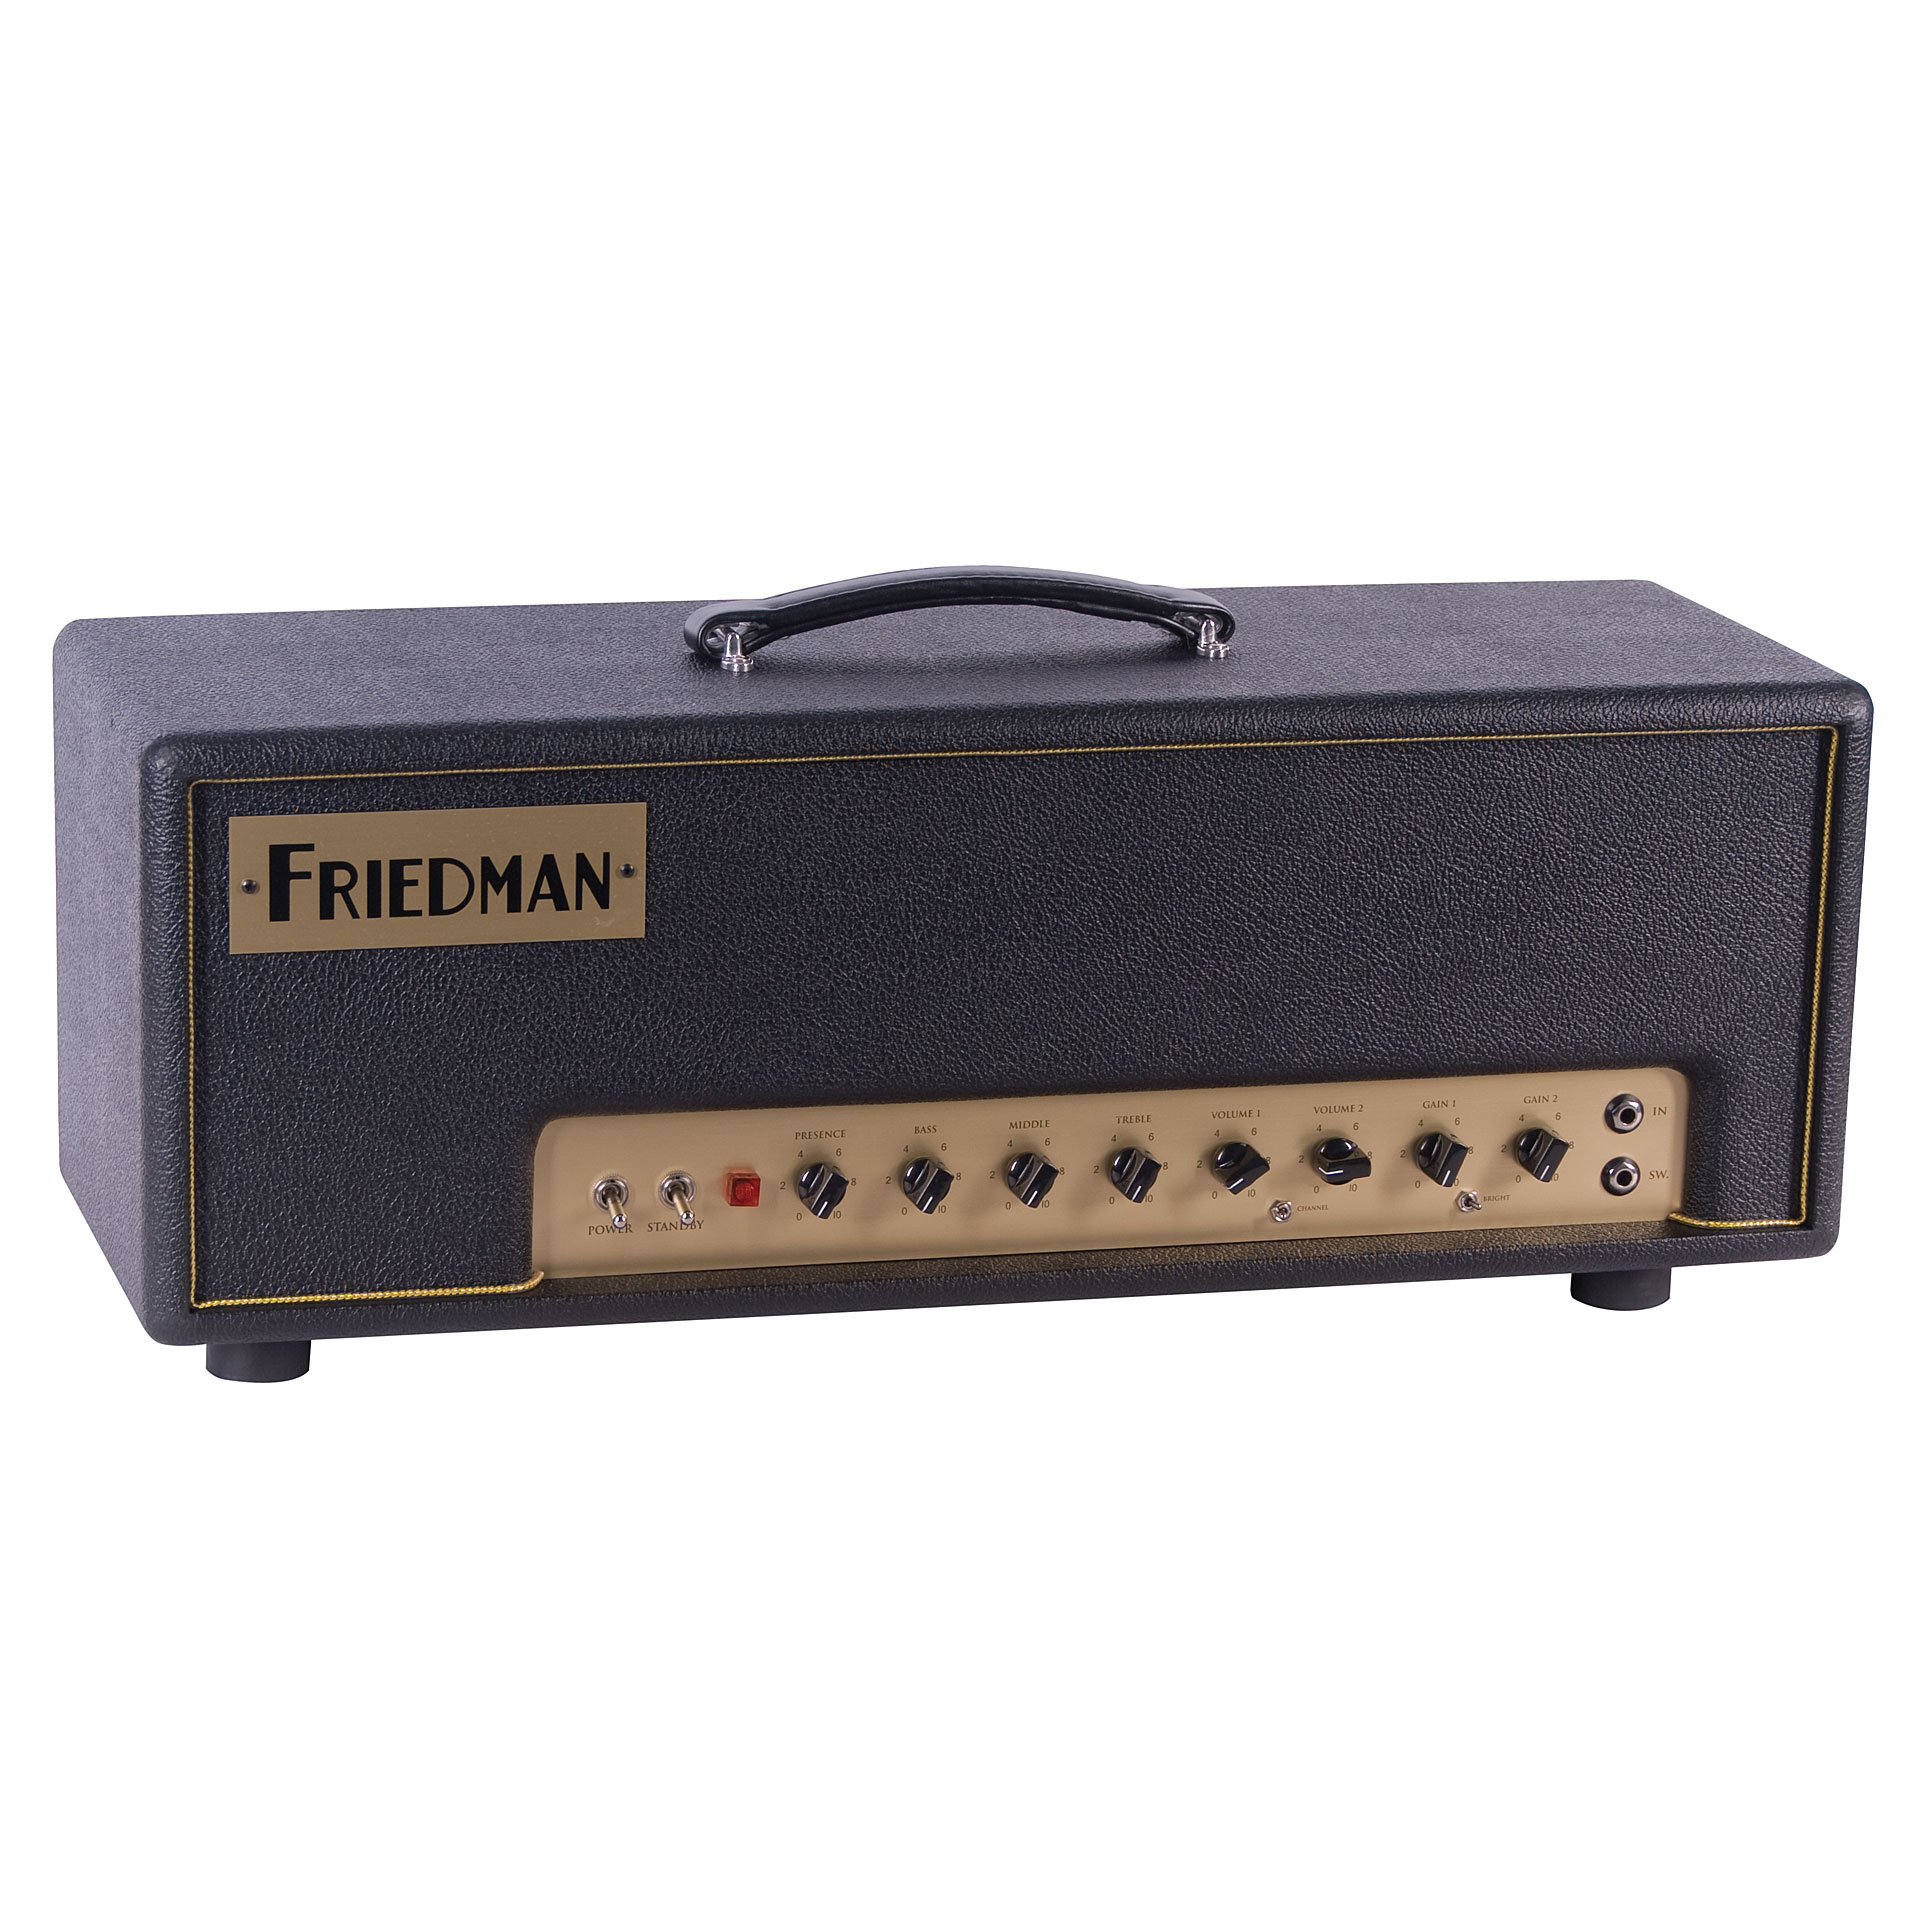 Friedman Small Box : friedman small box 50 10075204 guitar amp head ~ Vivirlamusica.com Haus und Dekorationen